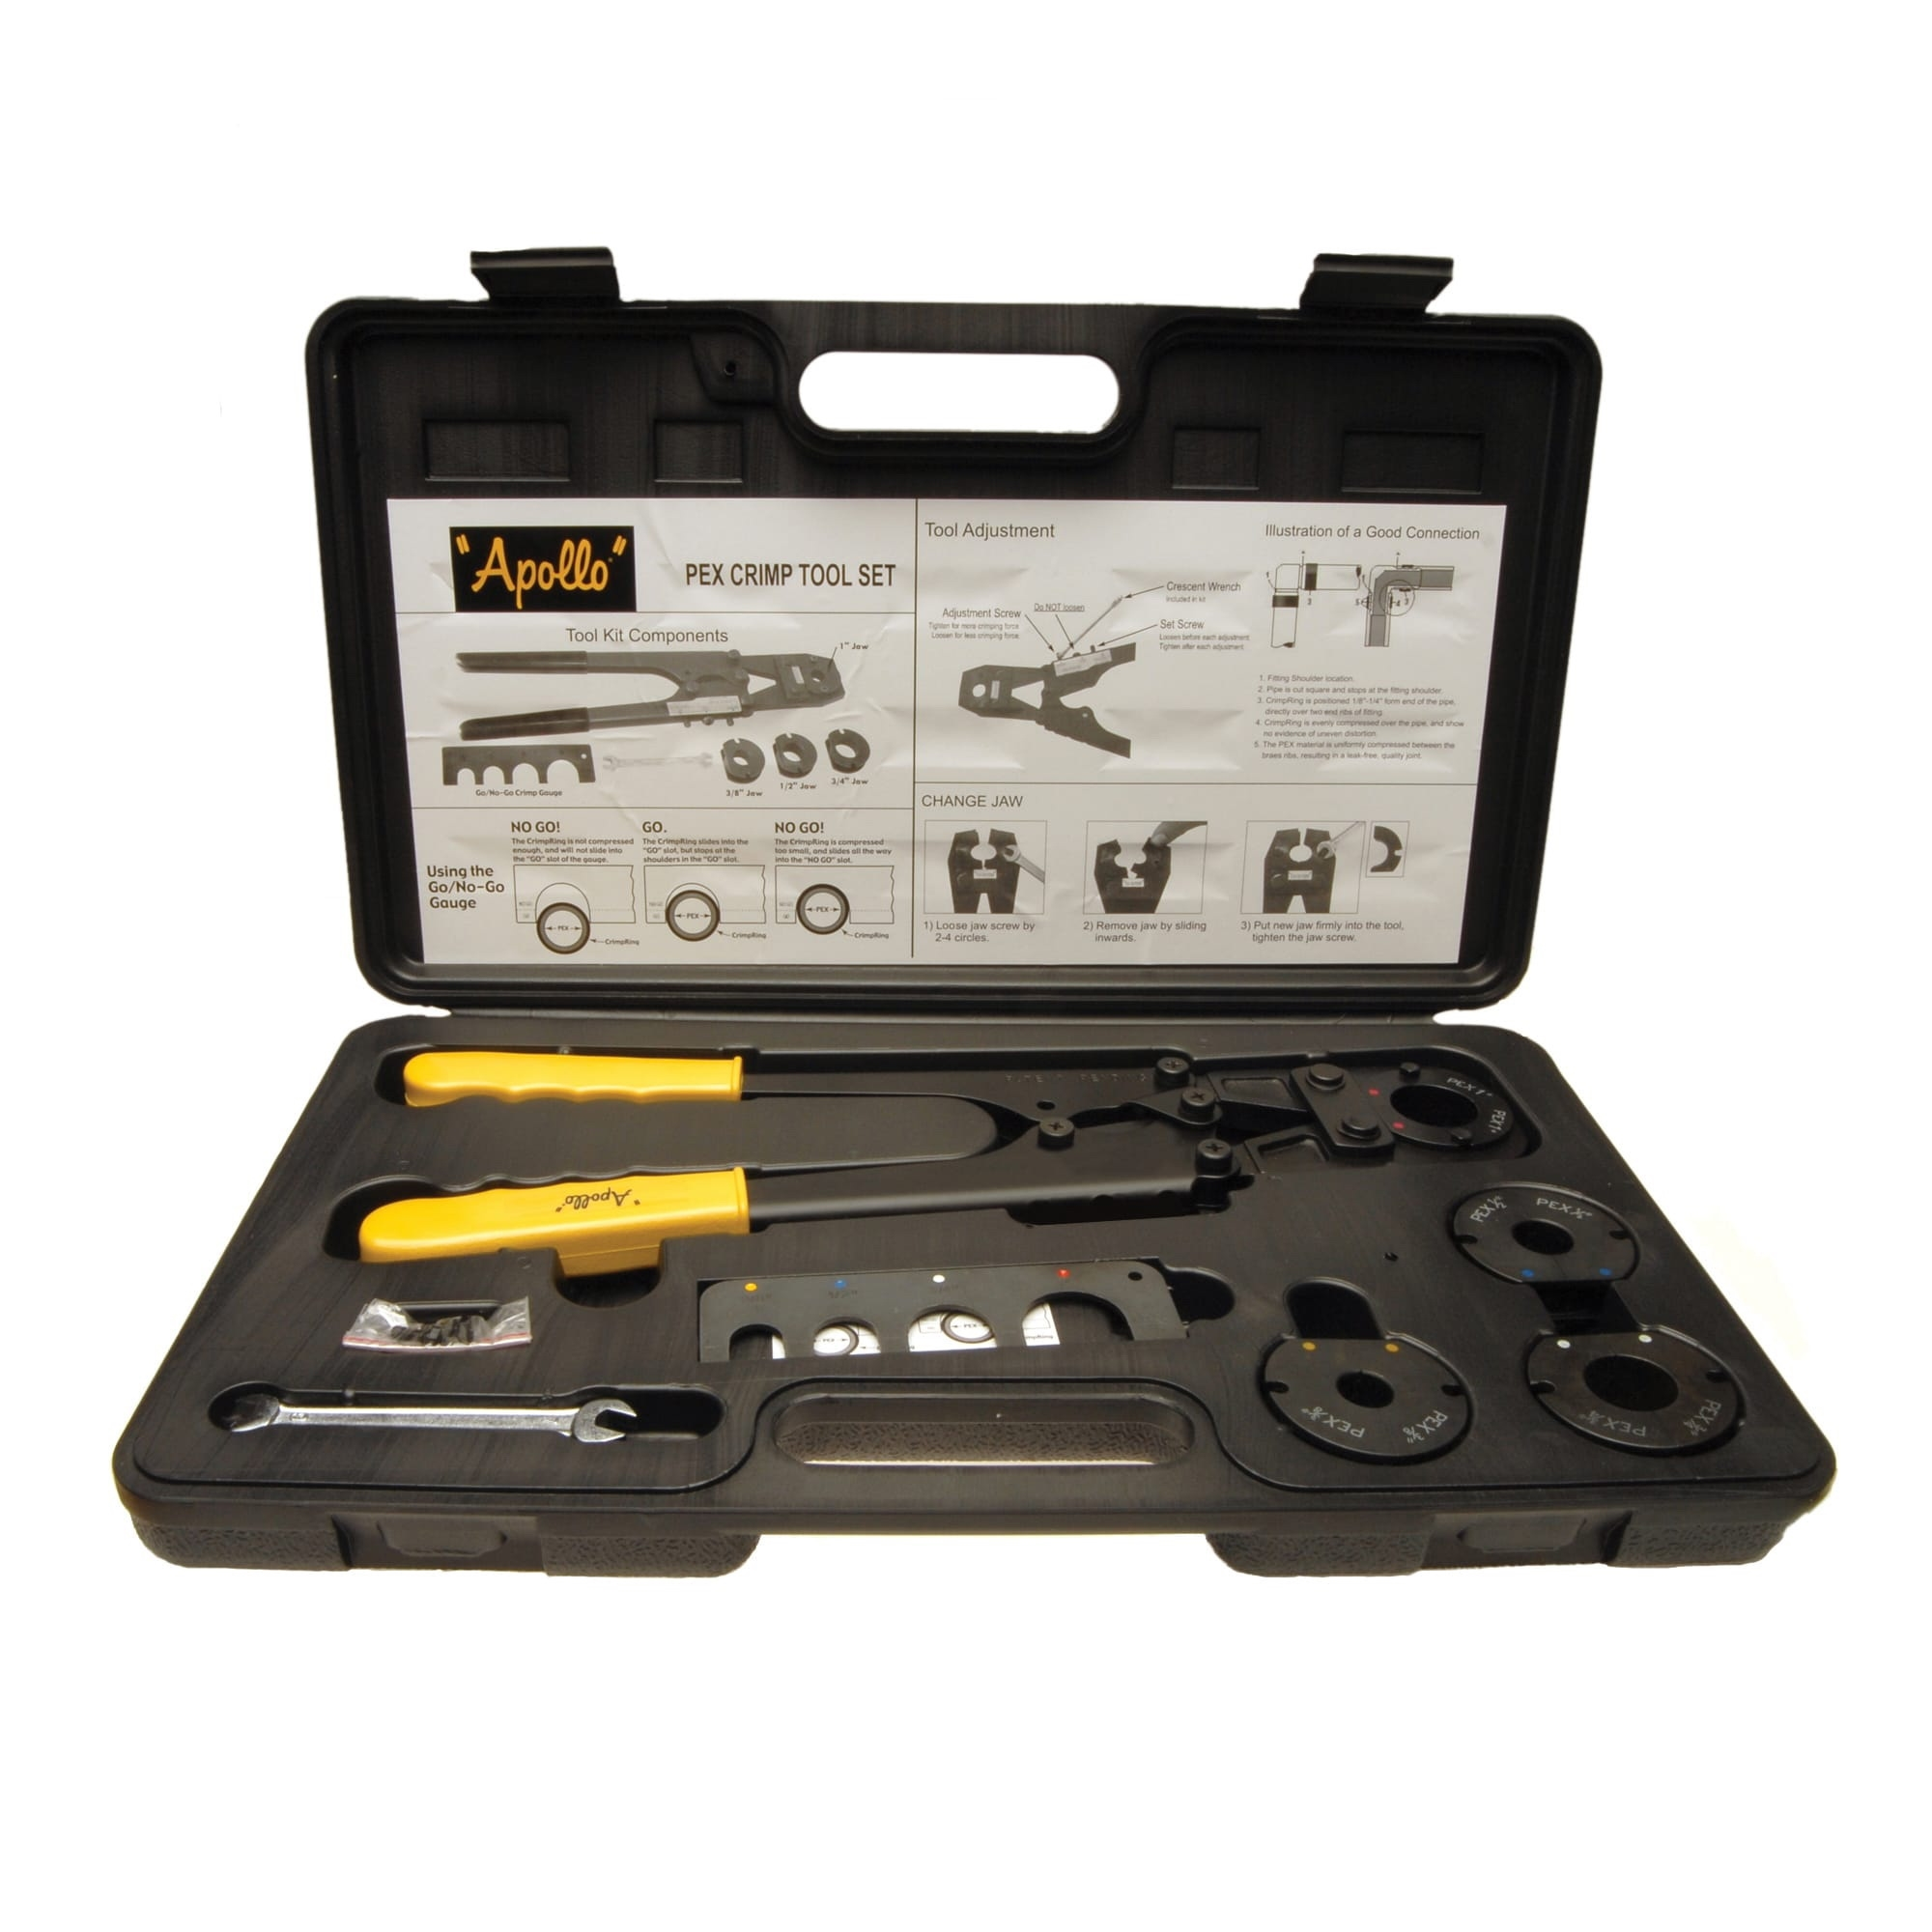 Picture of Apollo 69PTKH0015K Multi-Head Crimp Tool Kit, 3/8 to 1 in Crimping